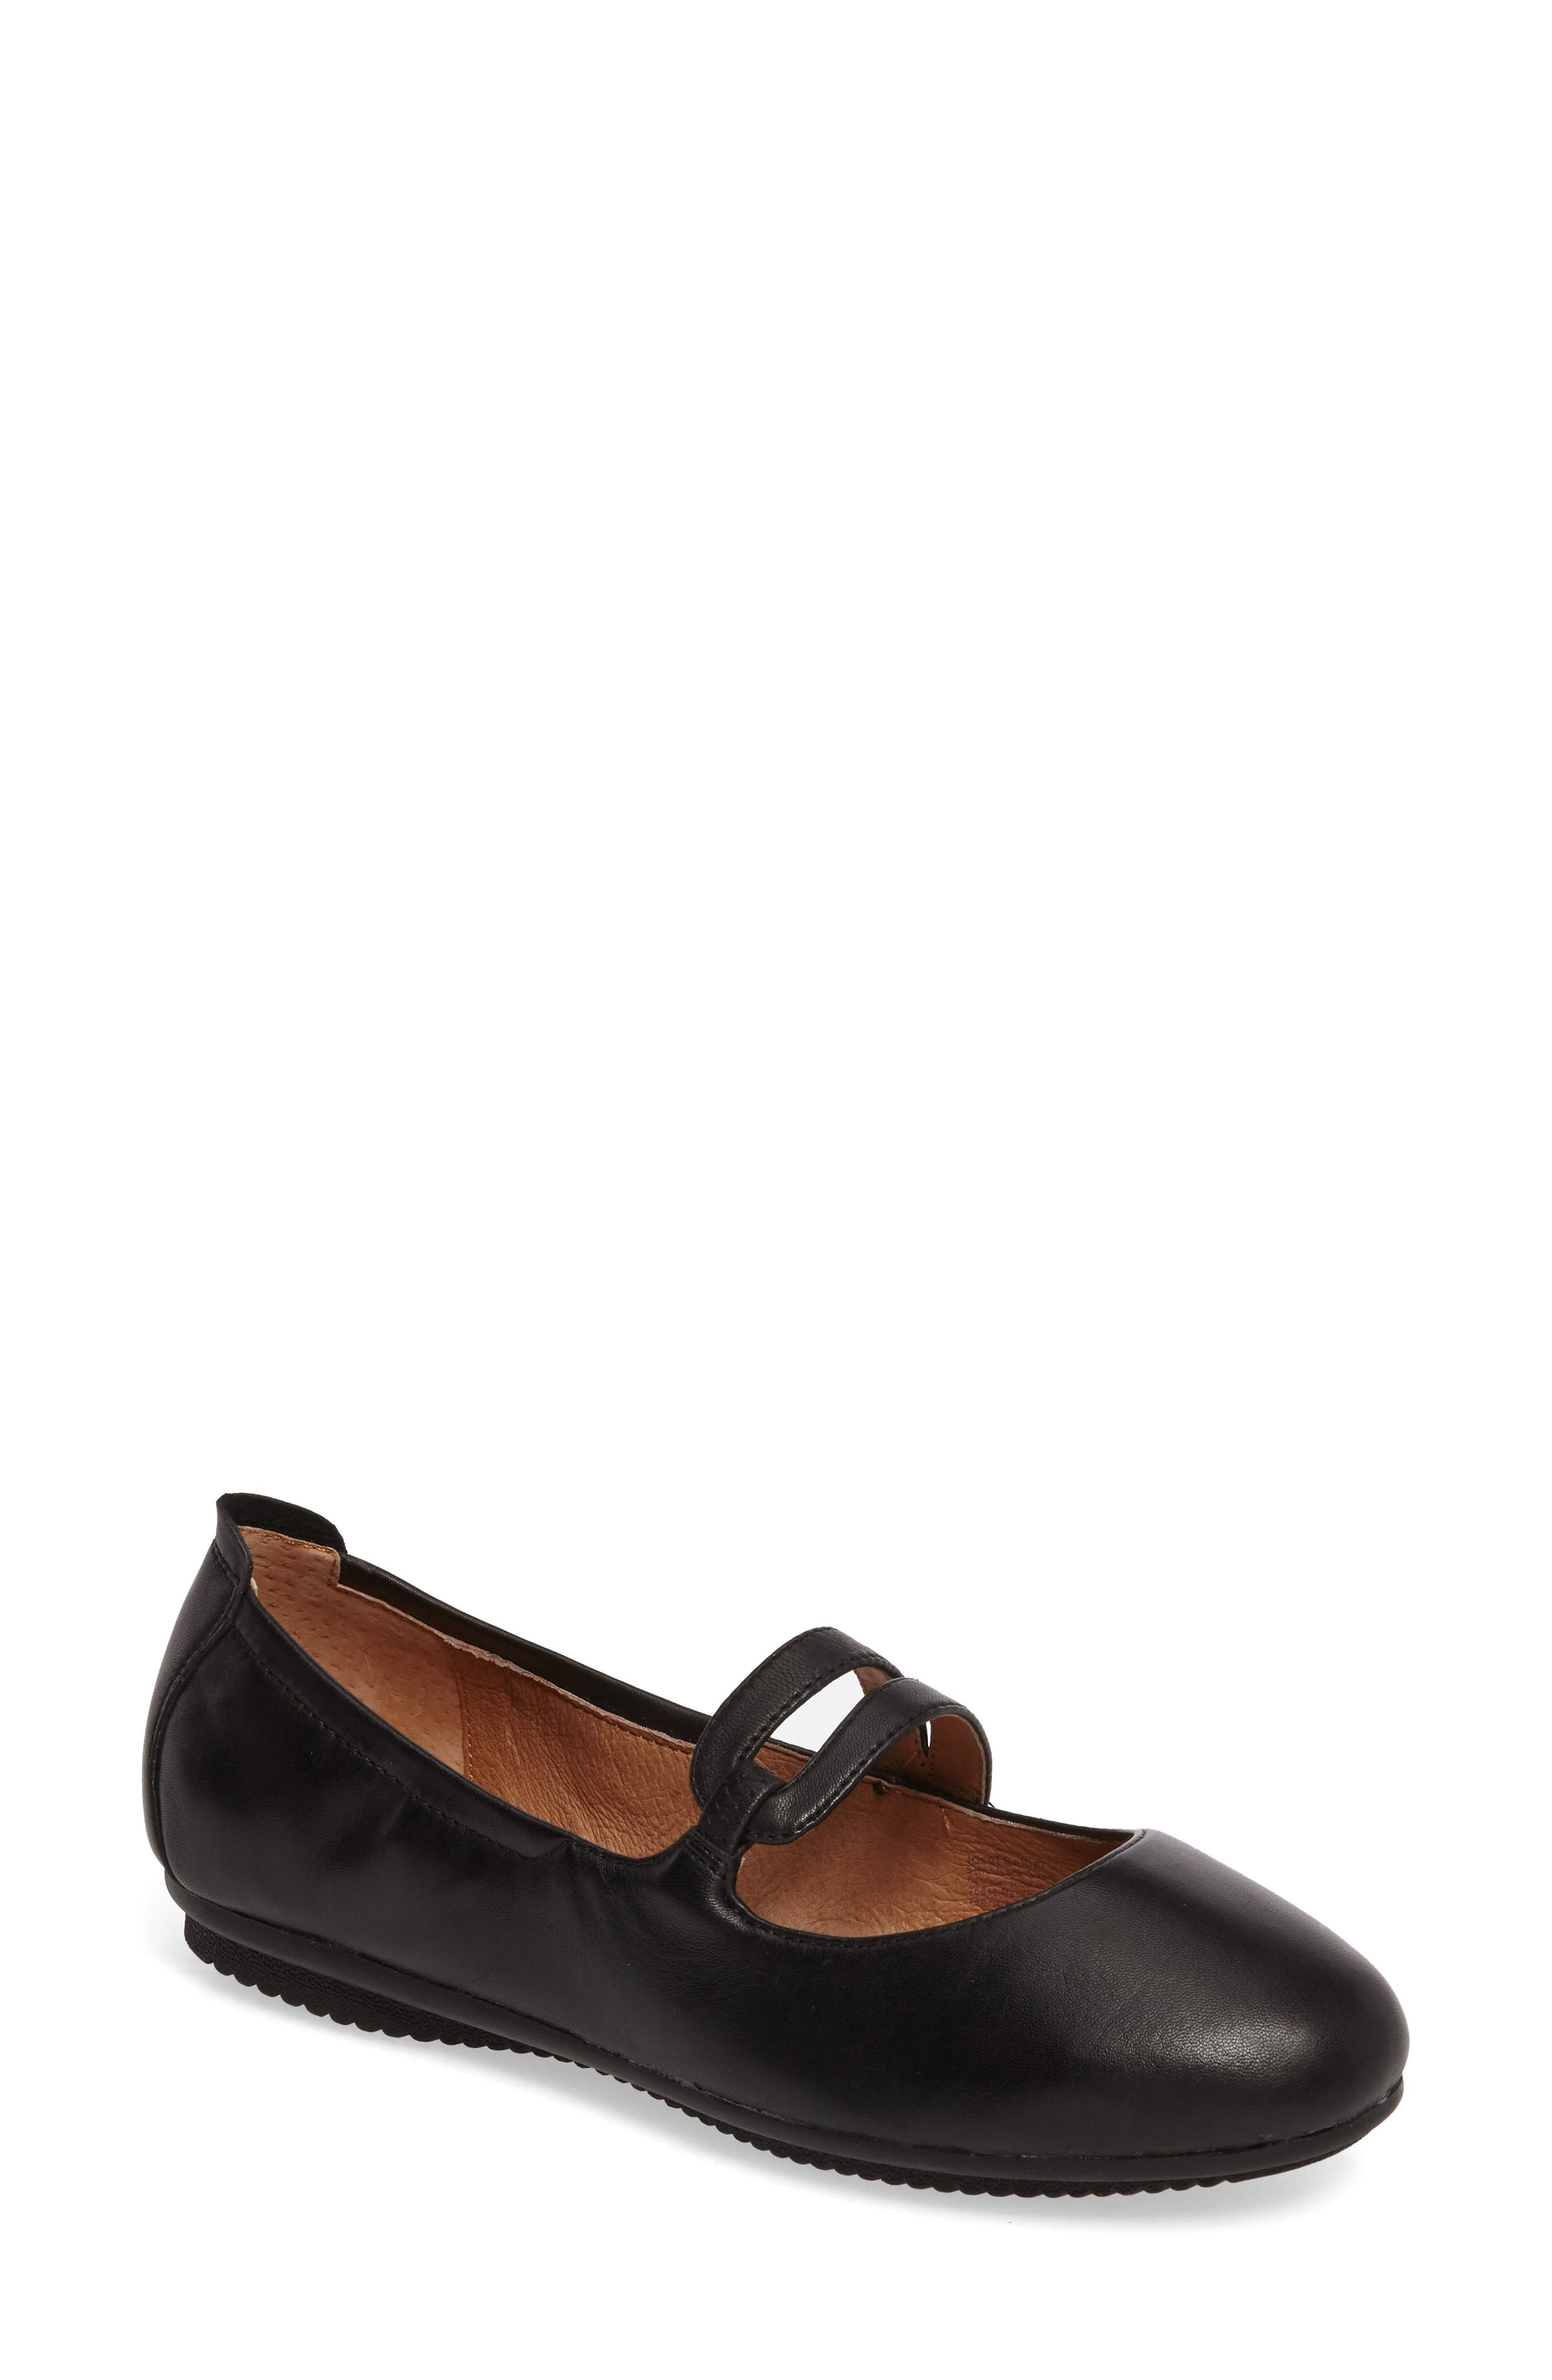 Pippa 63 Flat,                         Main,                         color, Black Leather